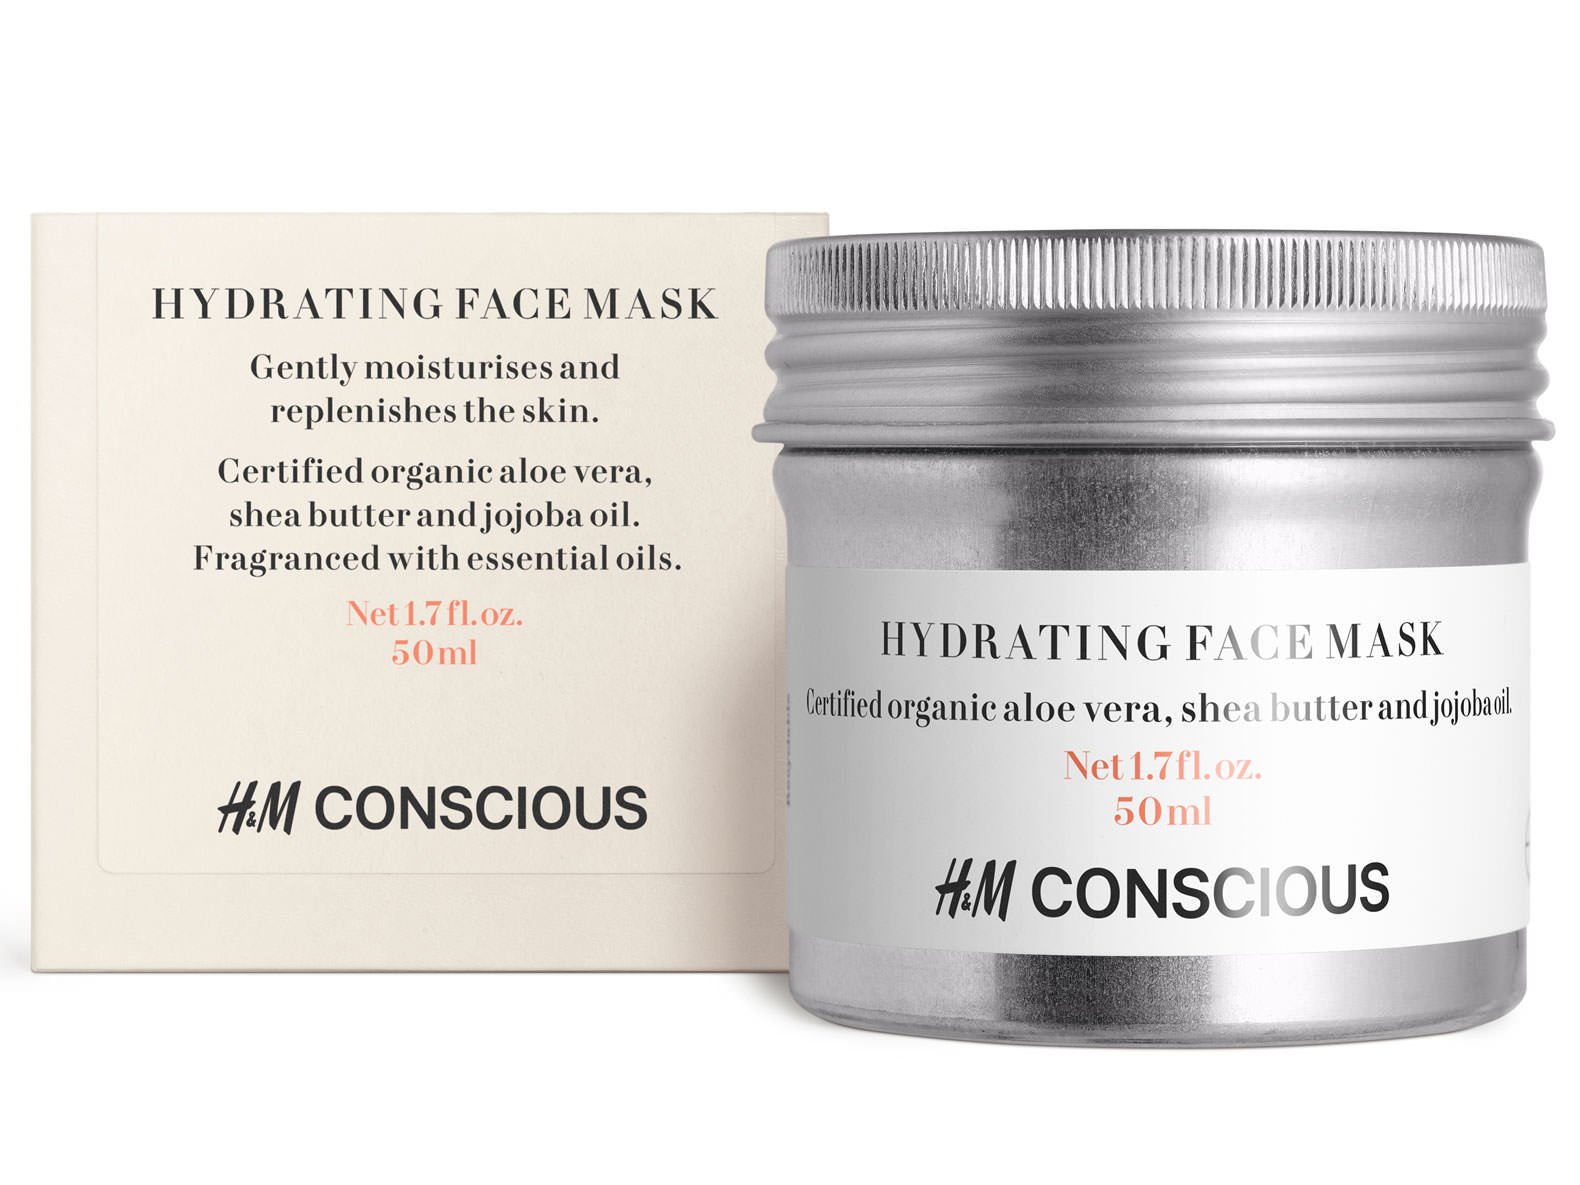 H&M Conscious Beauty